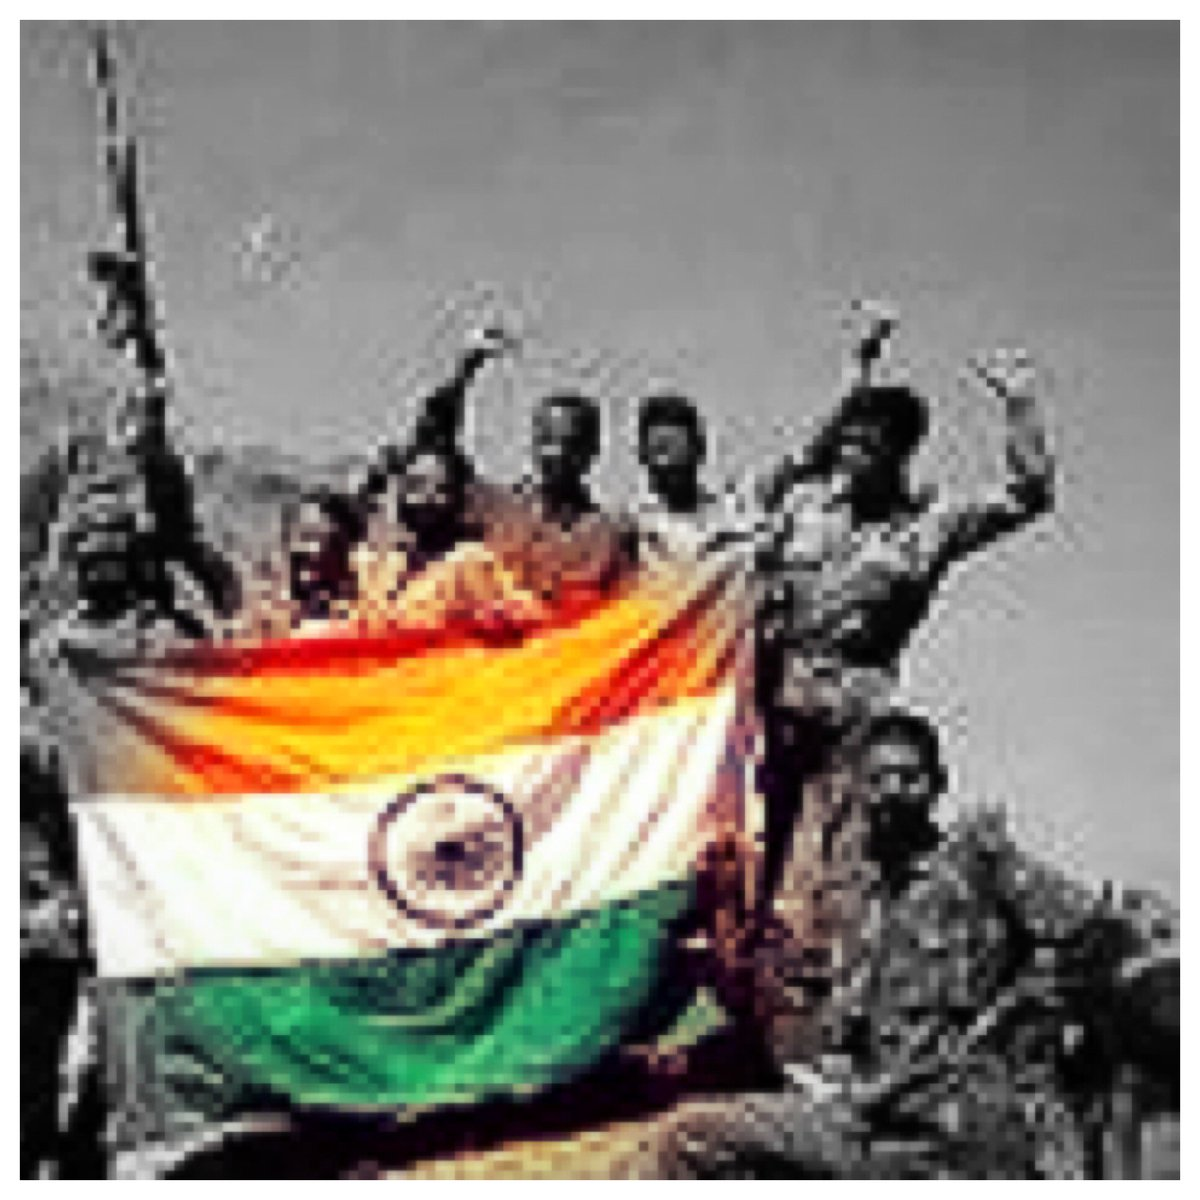 Thnx Indian army for the action against terrorism.V should all pray for safety & well being of our Indian soldiers.